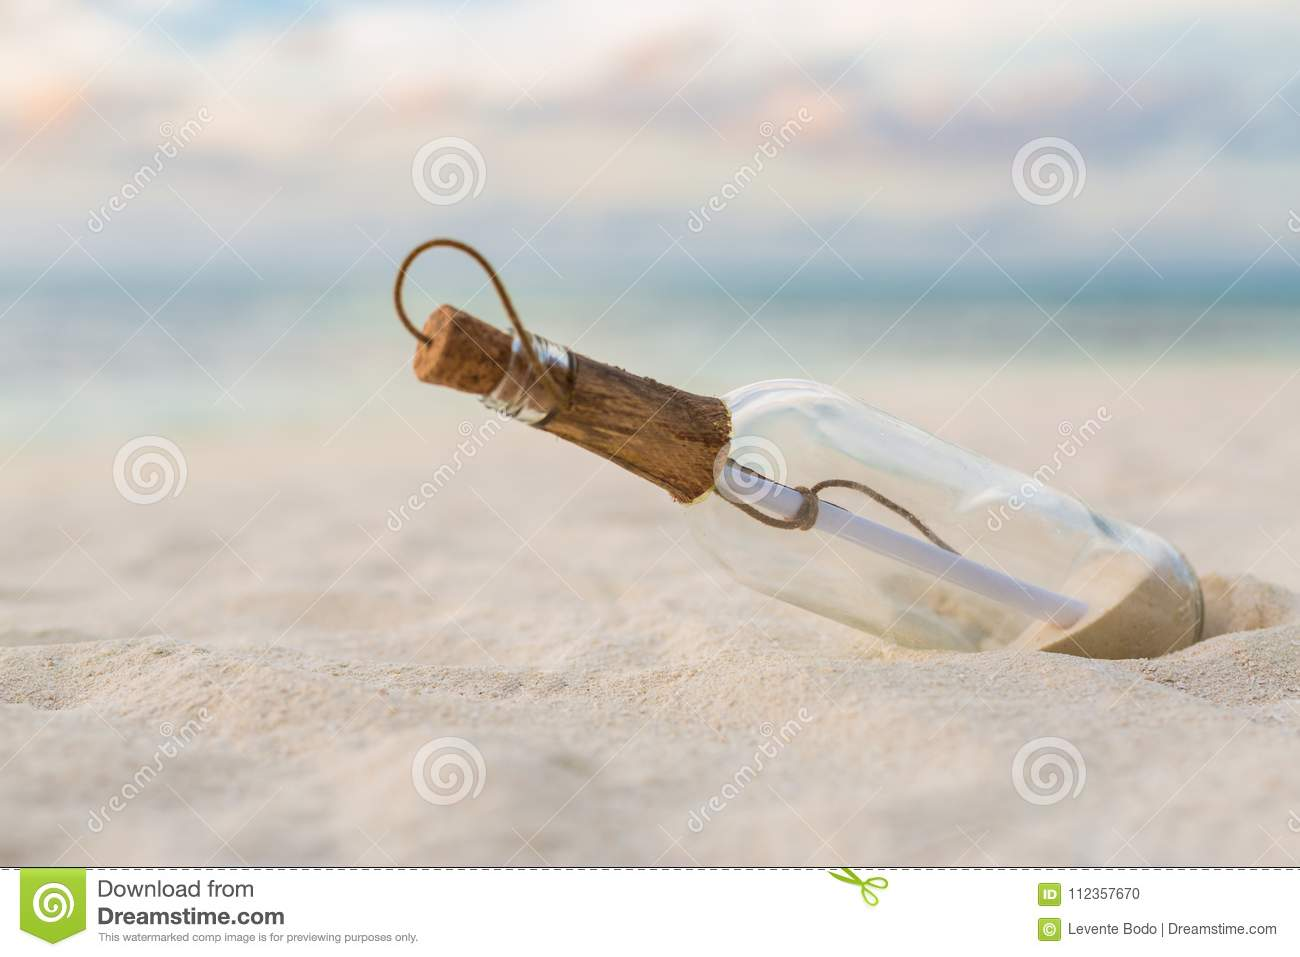 Message in a bottle on a tropical beach and blurred background. Inspire bckground design